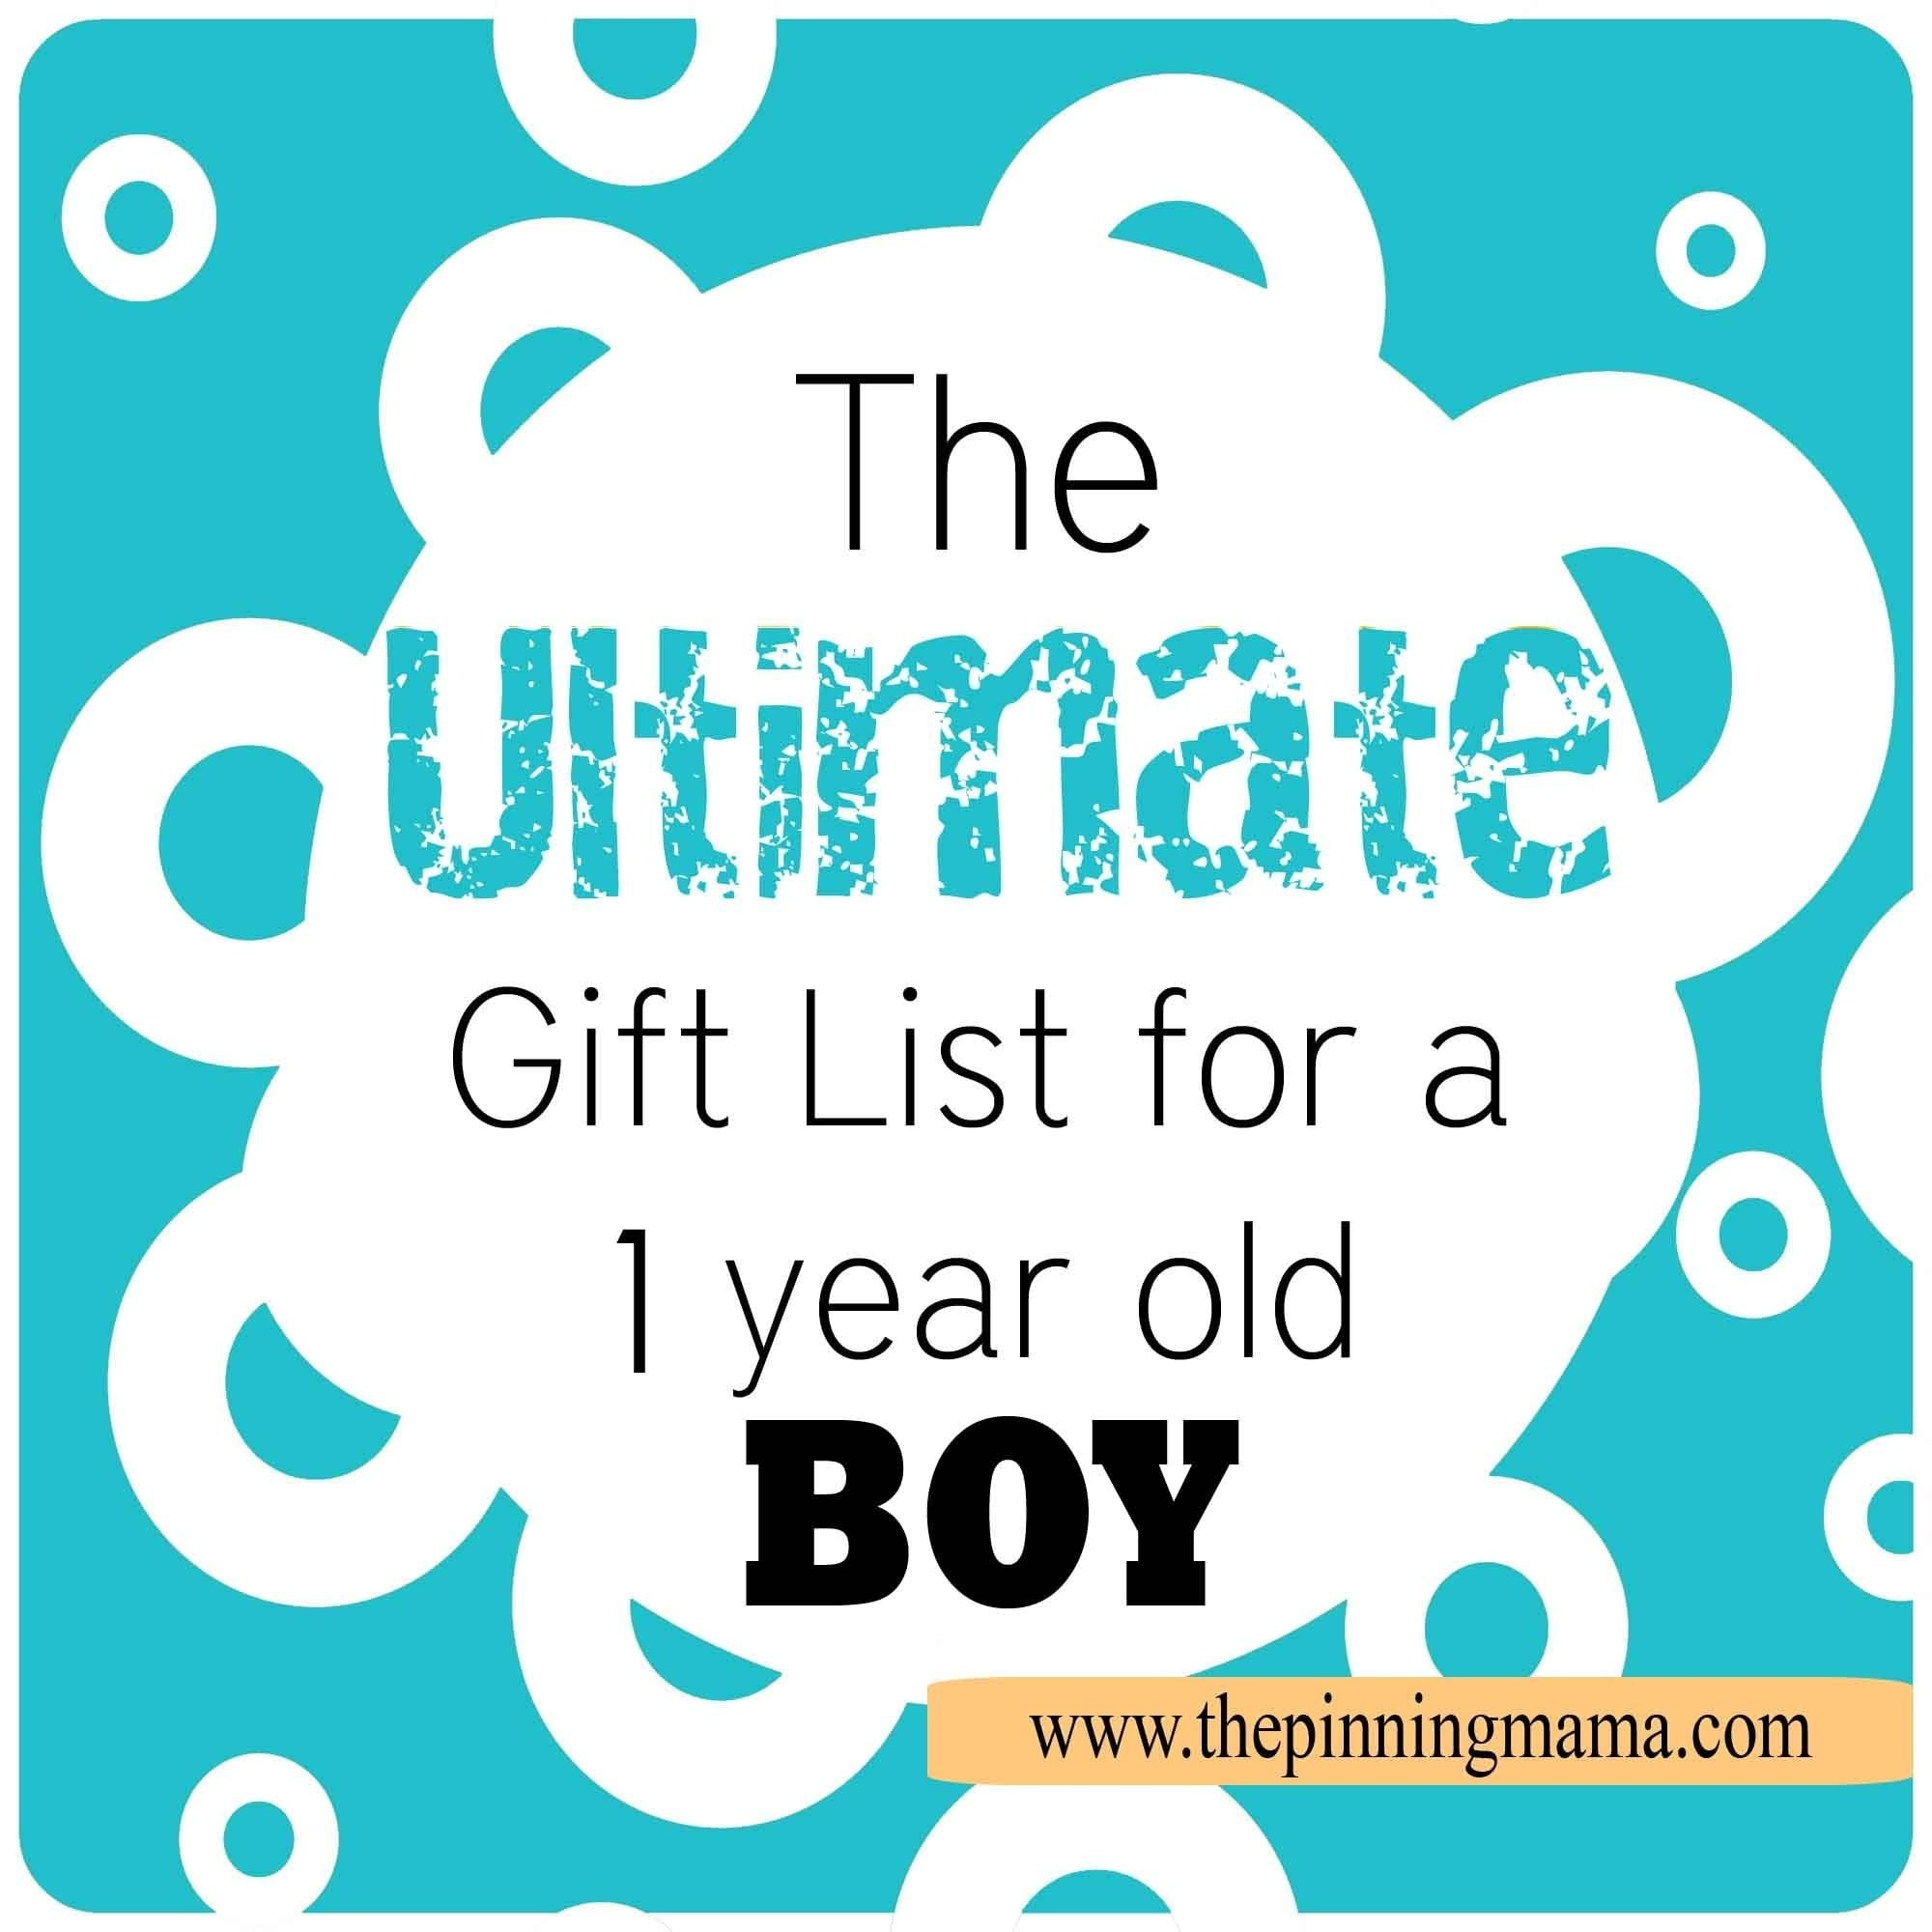 10 Best Gift Ideas For A One Year Old the ultimate gift list for a 1 year old boy e280a2 the pinning mama 8 2020